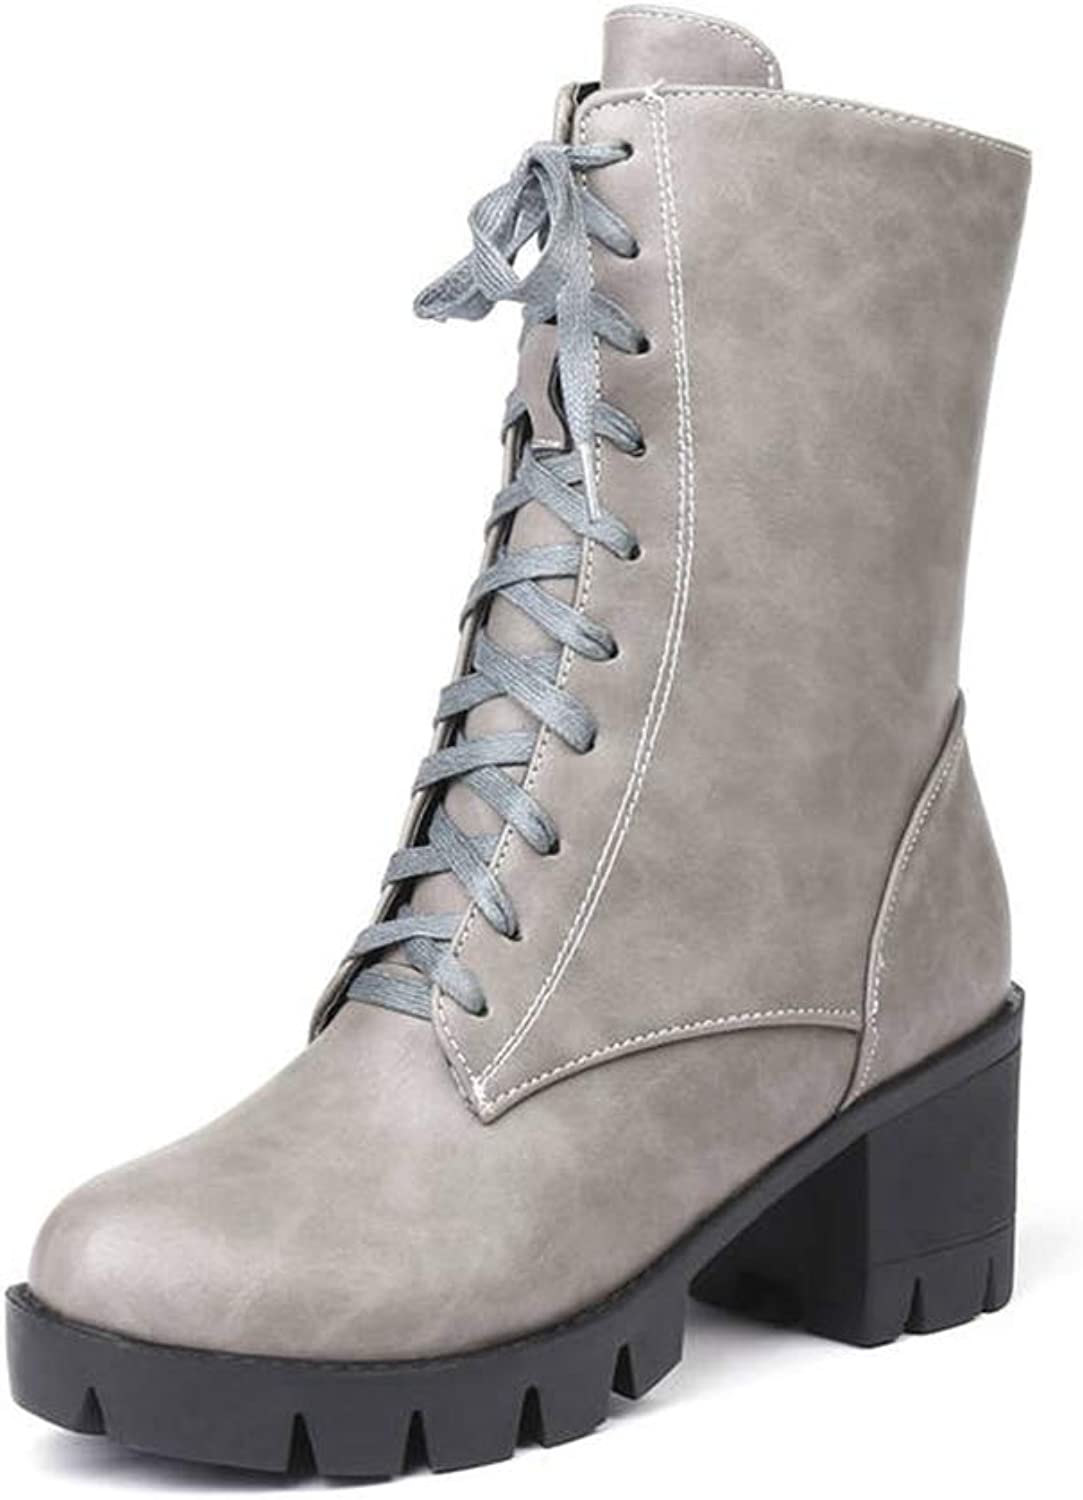 Woman Ankle Boots Lace Up Round Toe Zipper Antislip Sole Mid Square Heel Platform Fashion Winter Punk Boots